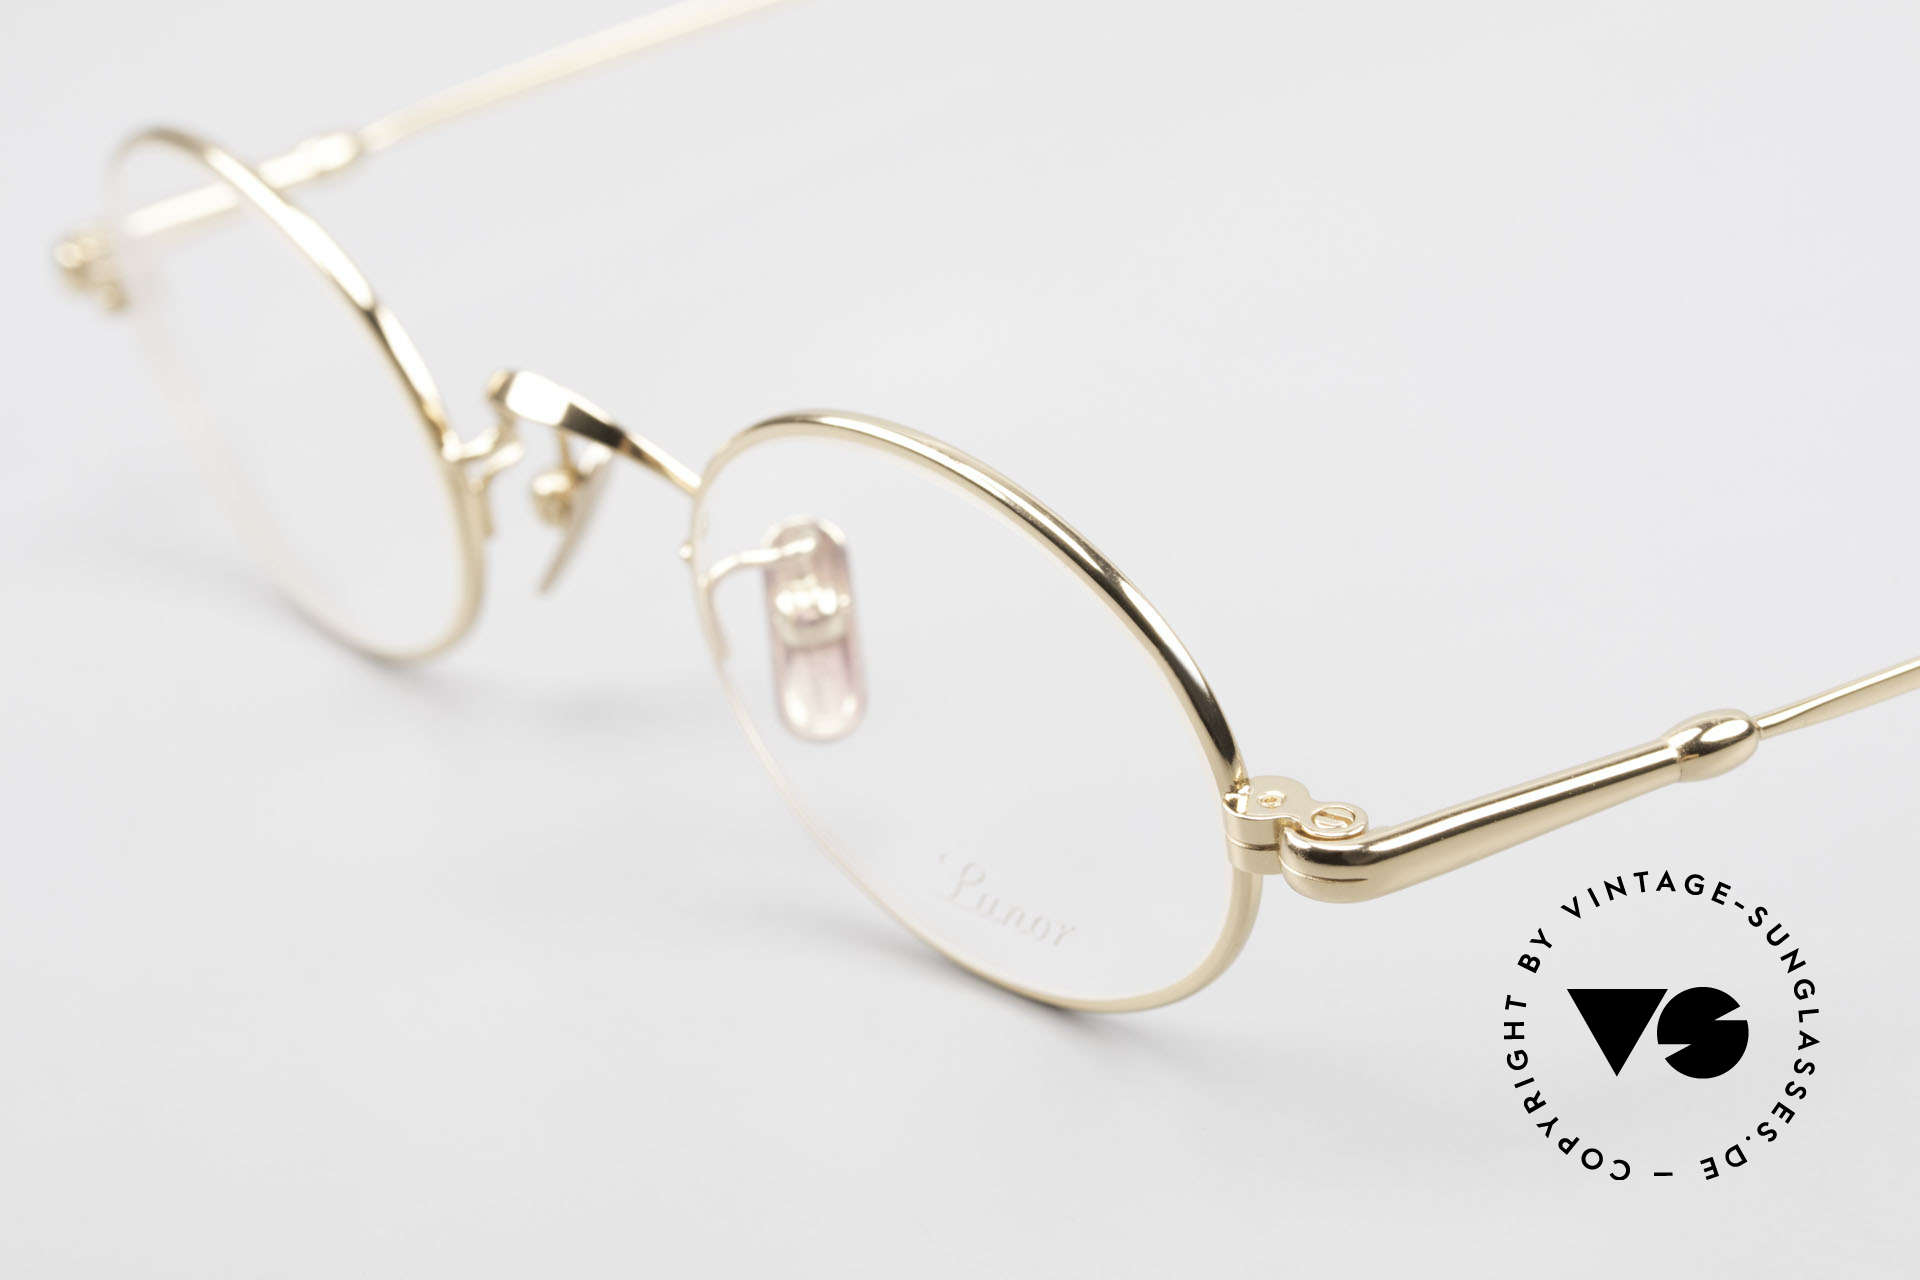 Lunor V 100 Oval Eyeglasses Gold Plated, from the 2011's collection, but in a well-known quality, Made for Men and Women